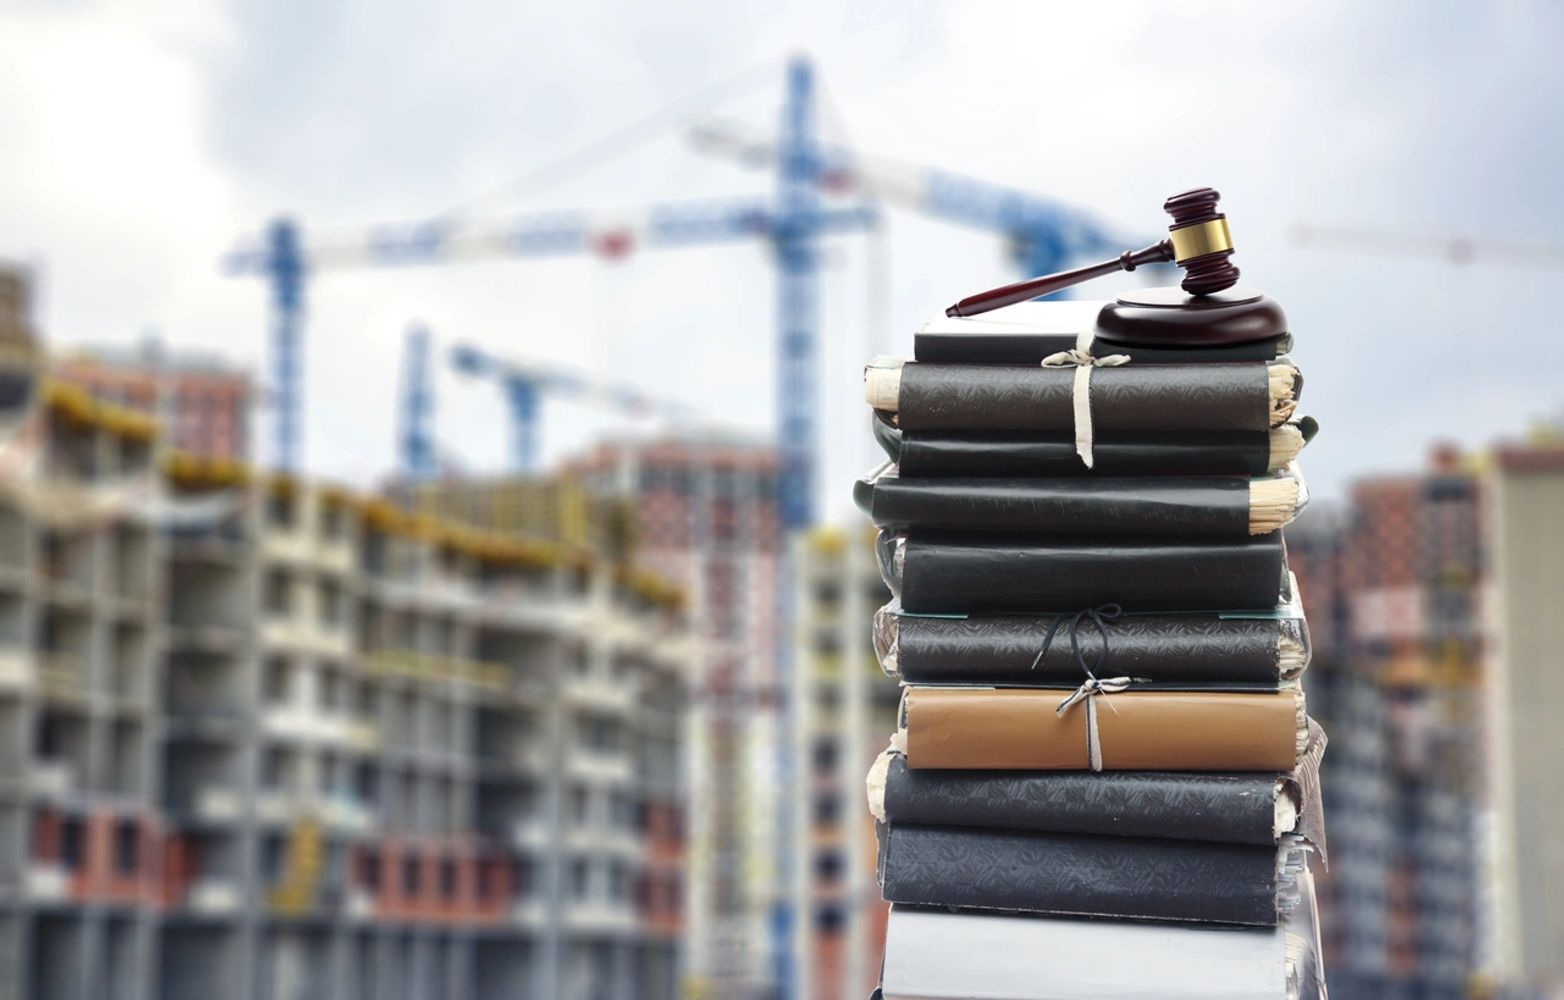 Smothers Law Firm specializes in construction, civil, real estate, business, and commercial law.